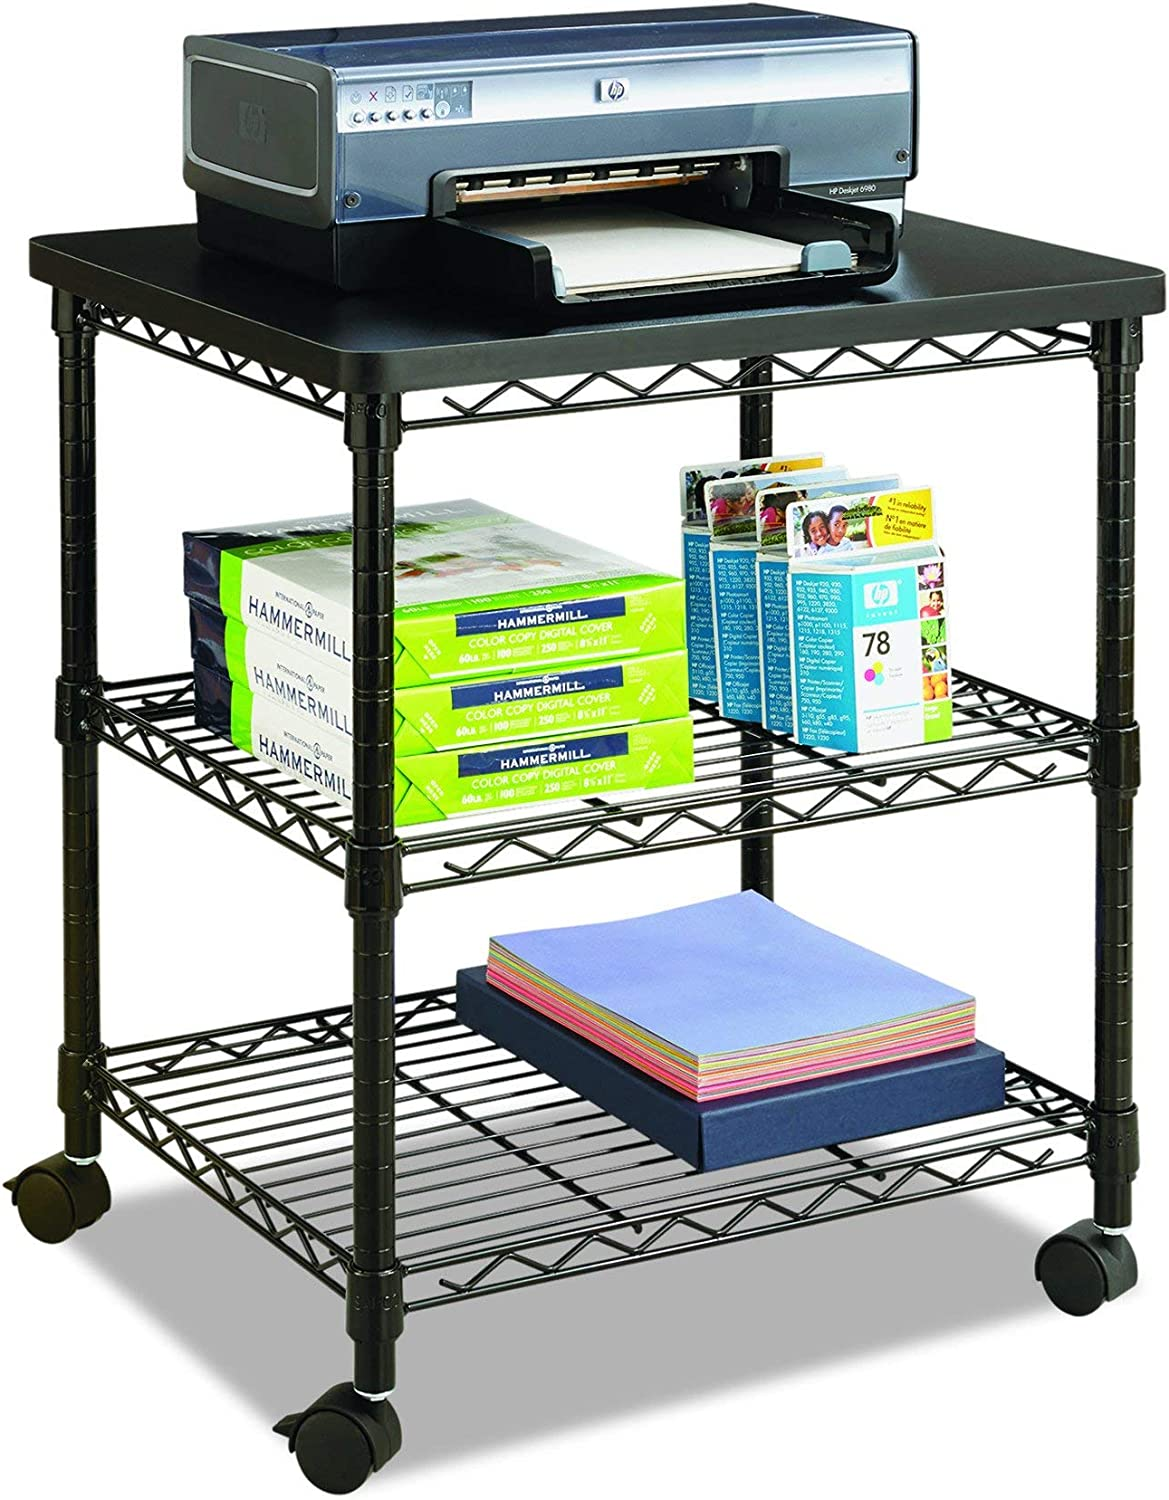 Safco Products Deskside Wire Machine Stand 5207BL, Holds up to 200 lbs.,Black: Home & Kitchen